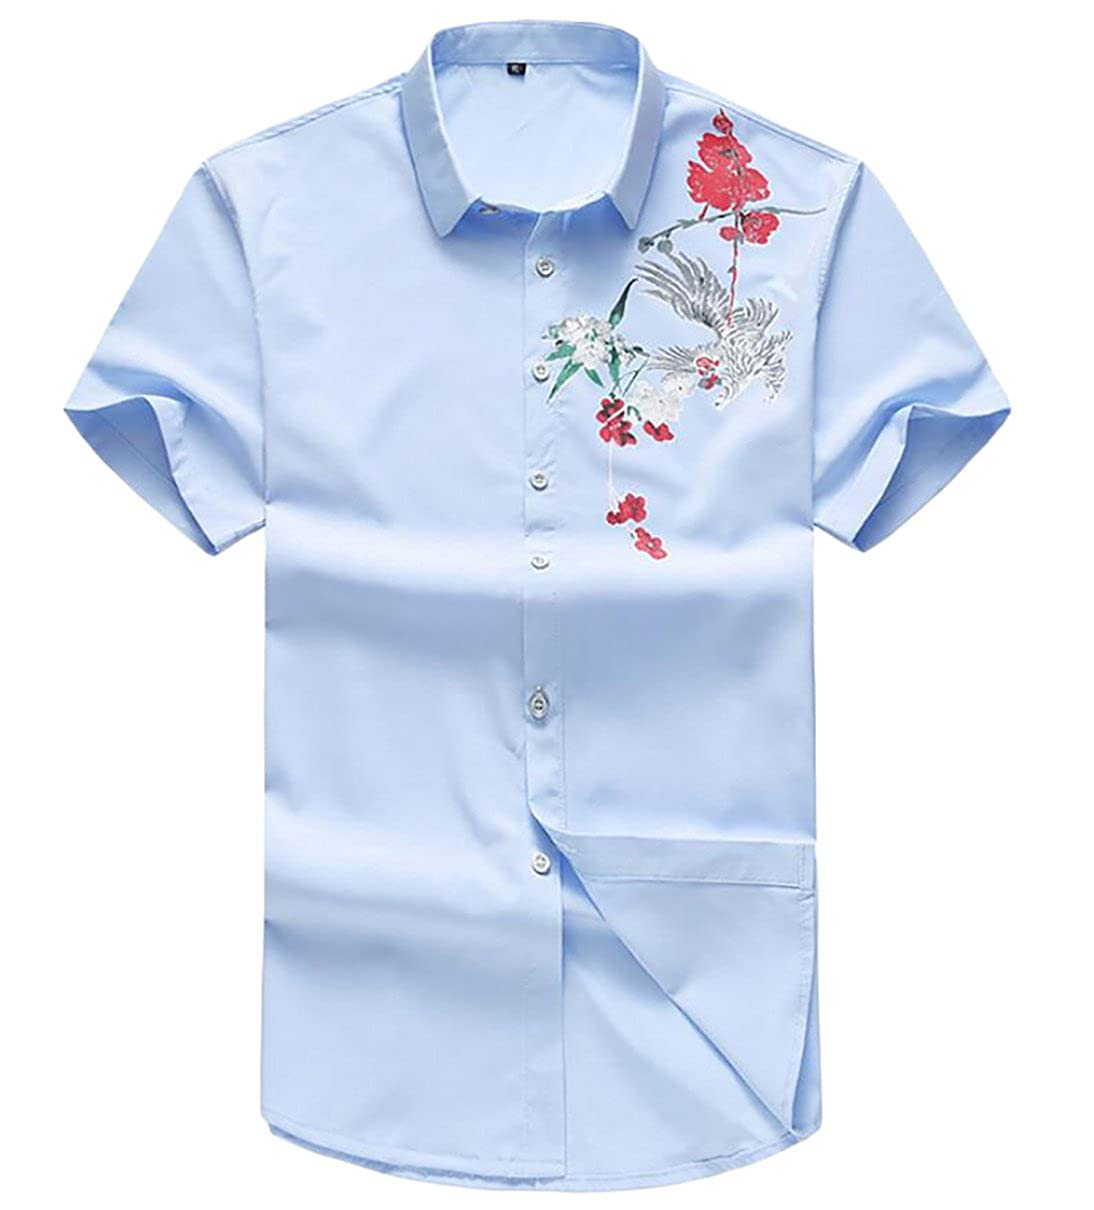 Qiangjinjiu Men Short Sleeve Embroidered Solid-Colored Turn Down Collar Fashional Slim Fitted Dresses Shirt